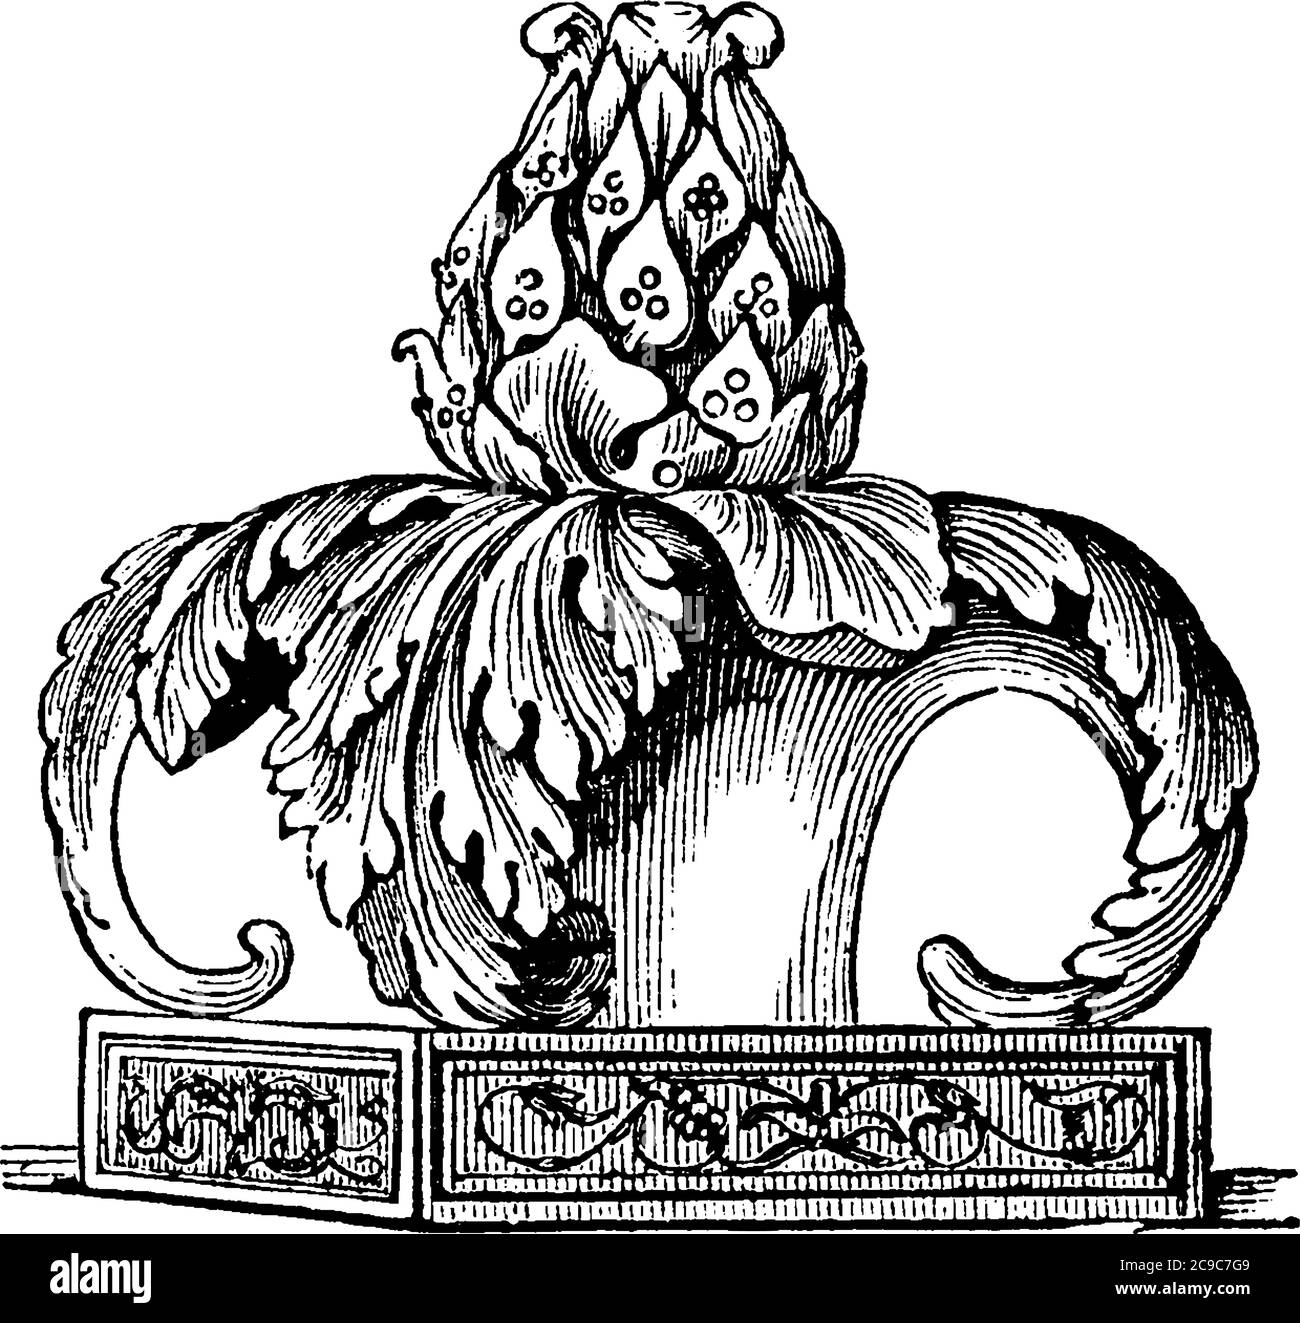 Thyrsus, a pole carried by Bacchus, and by Satyrs, Maenades, and others. The annexed cut shows the head of a thyrsus composed of the leaves and berrie Stock Vector